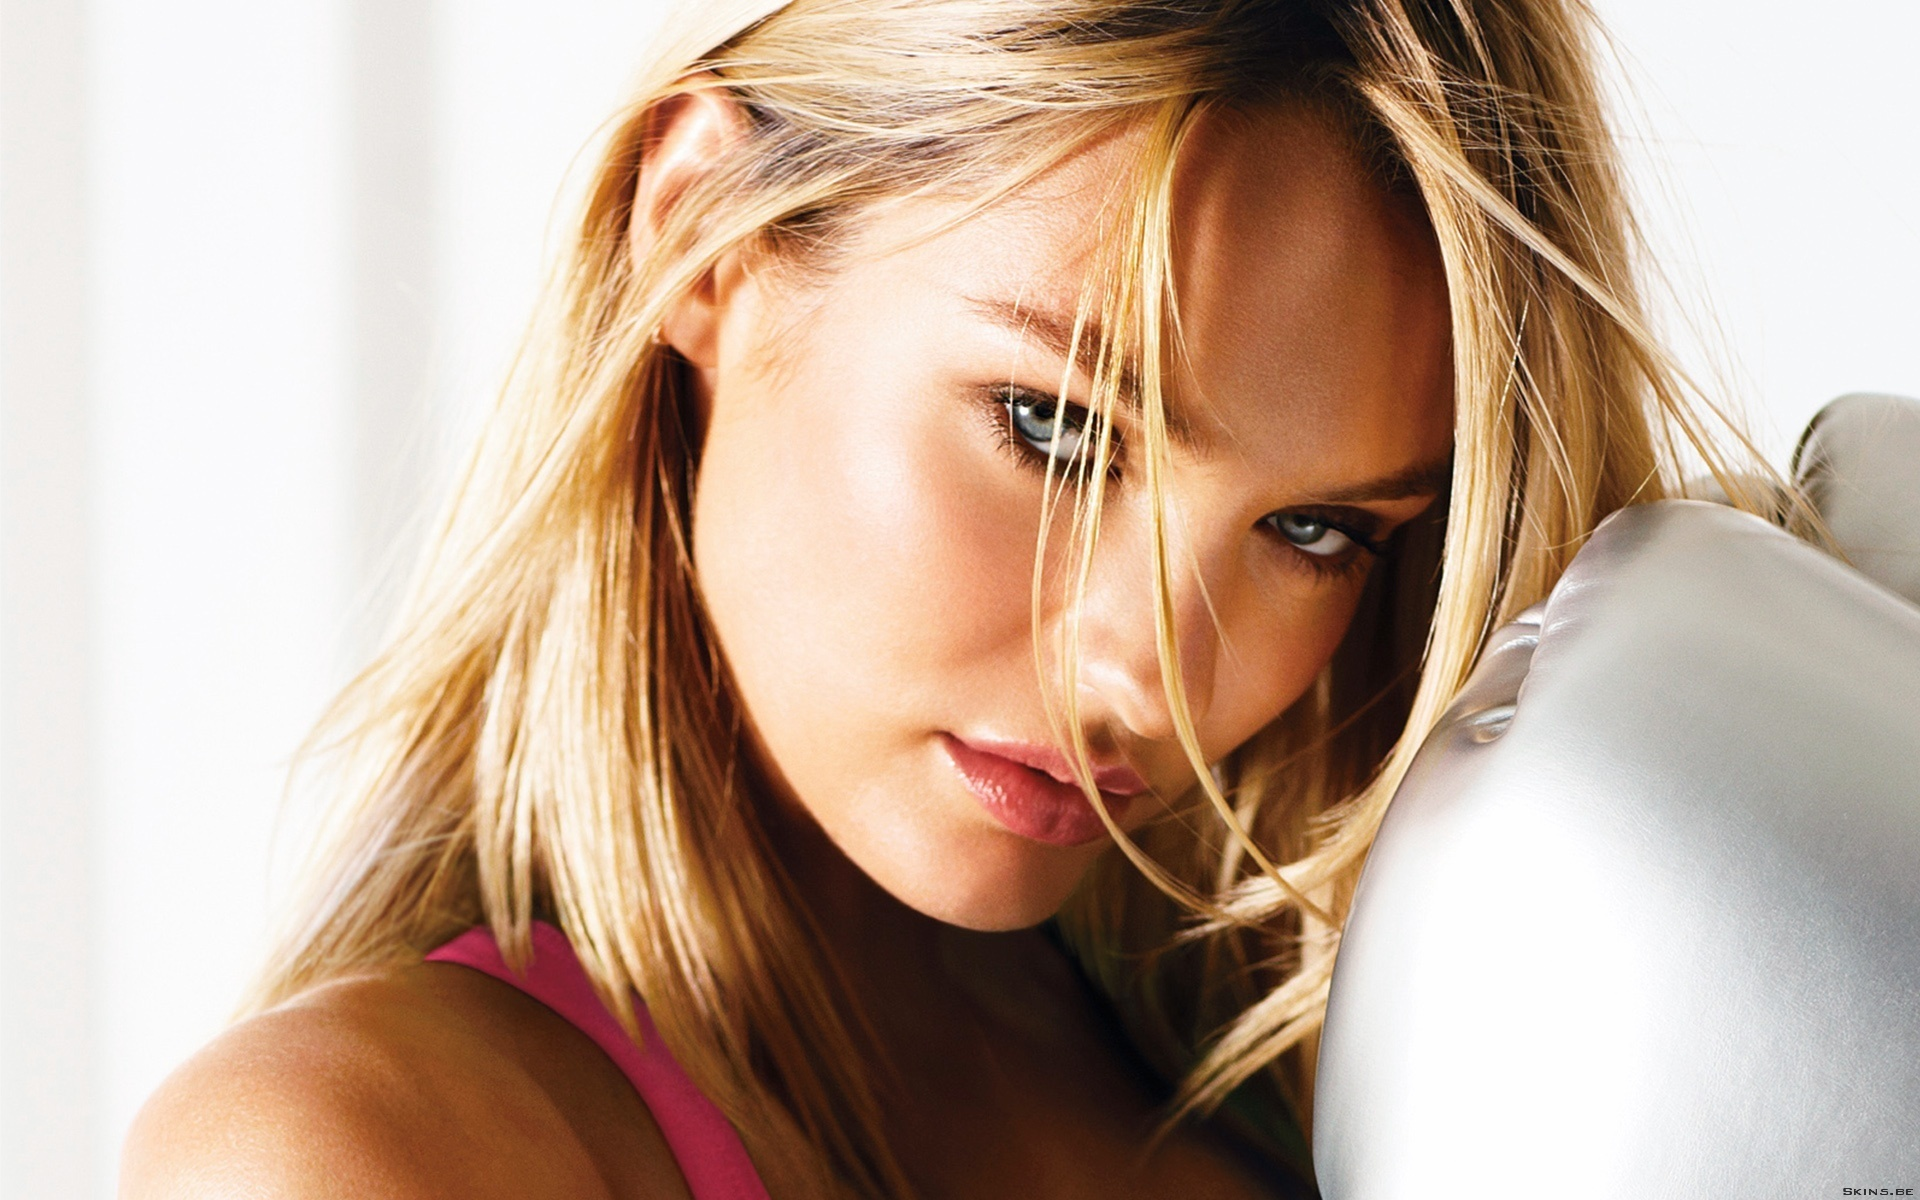 Candice Swanepoel Women Fashion Models Blondes Sexy Babes -2009